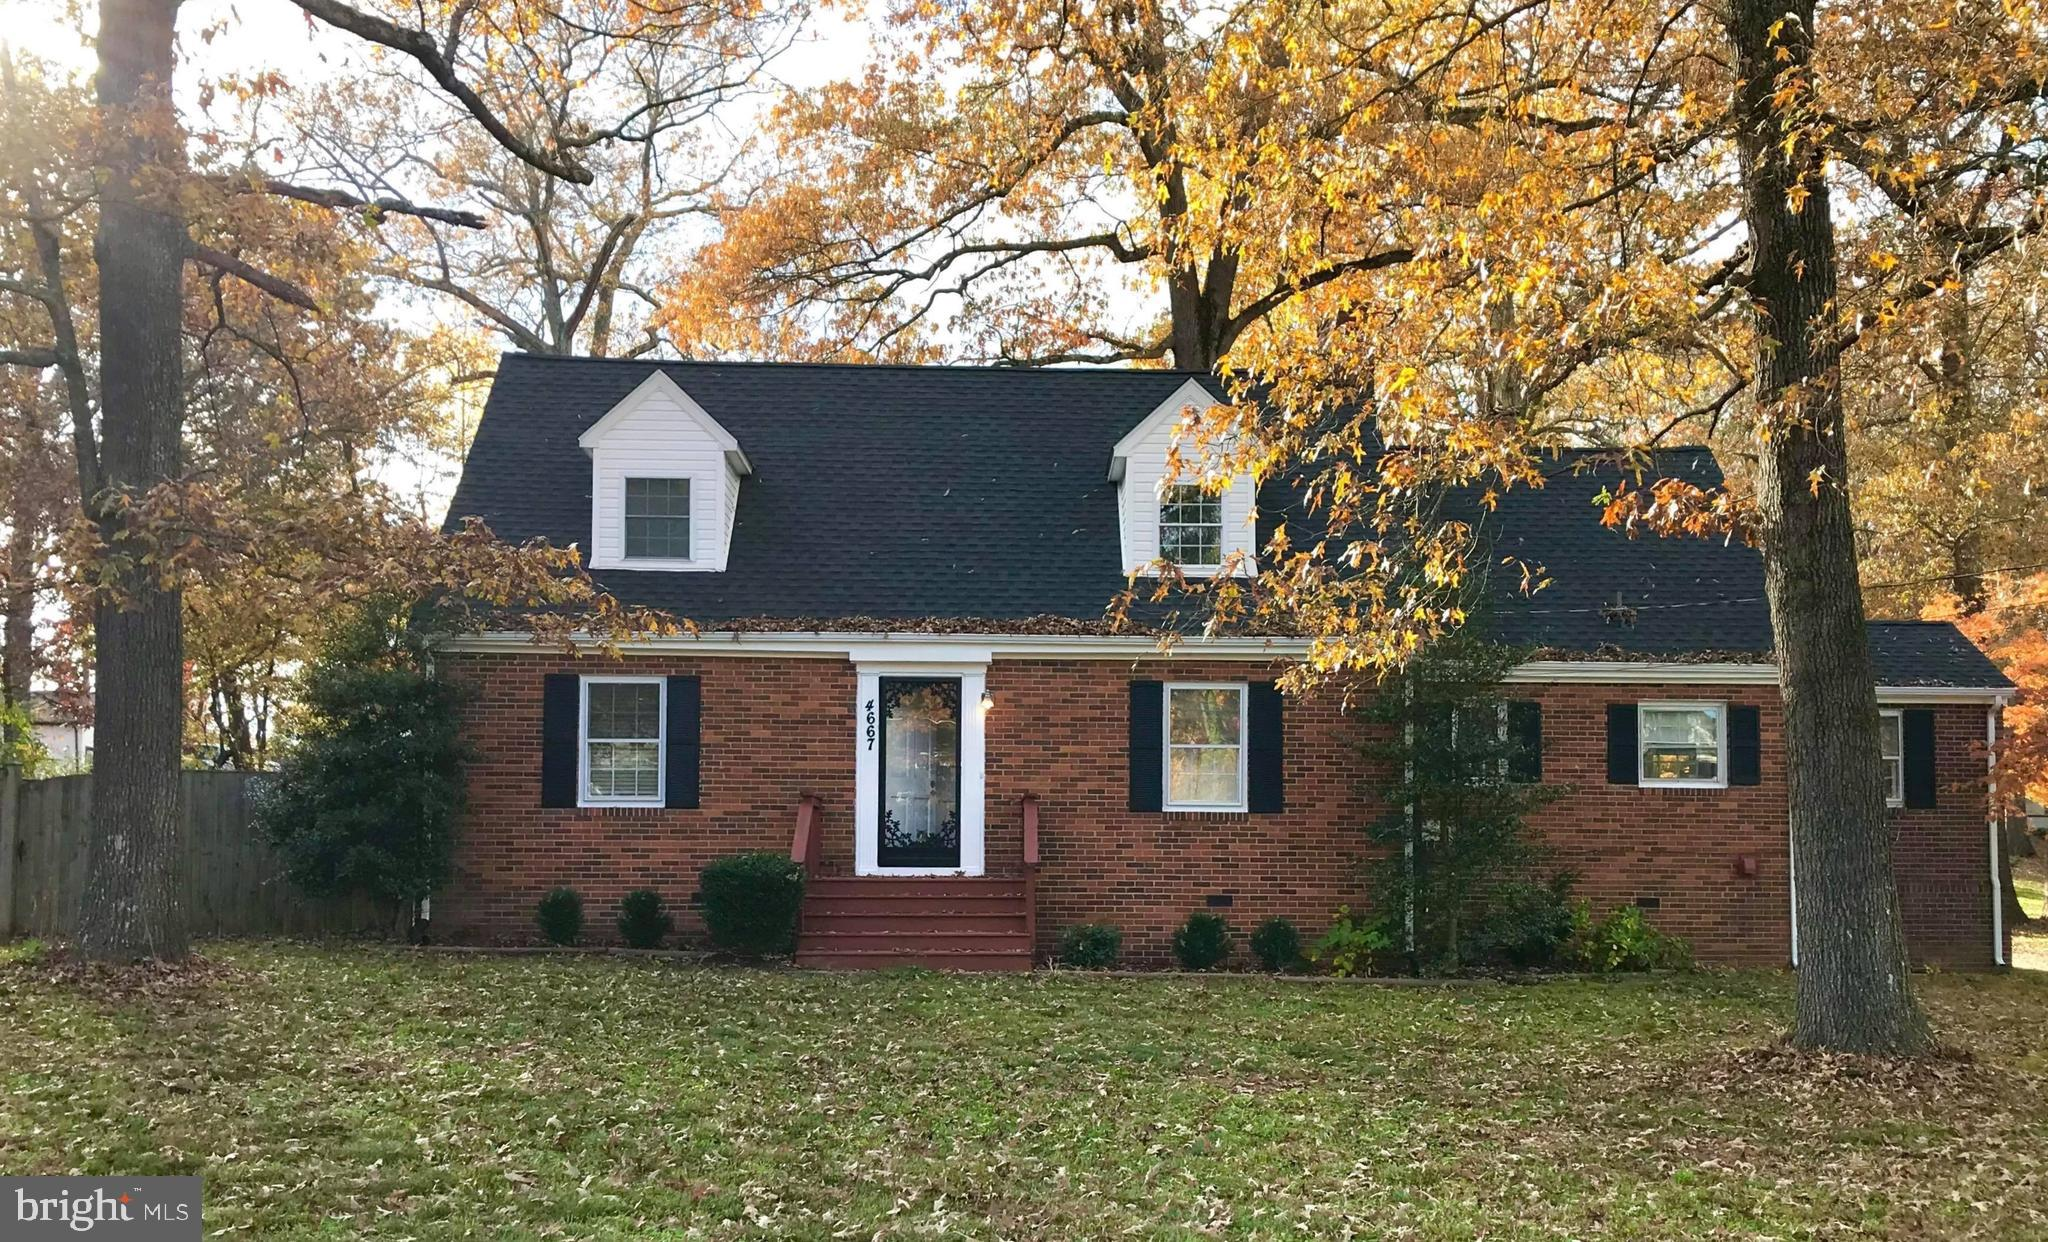 Classic Brick Cape Cod Convenient To All Things Modern and Necessary, Beautiful Hardwood Floors Just